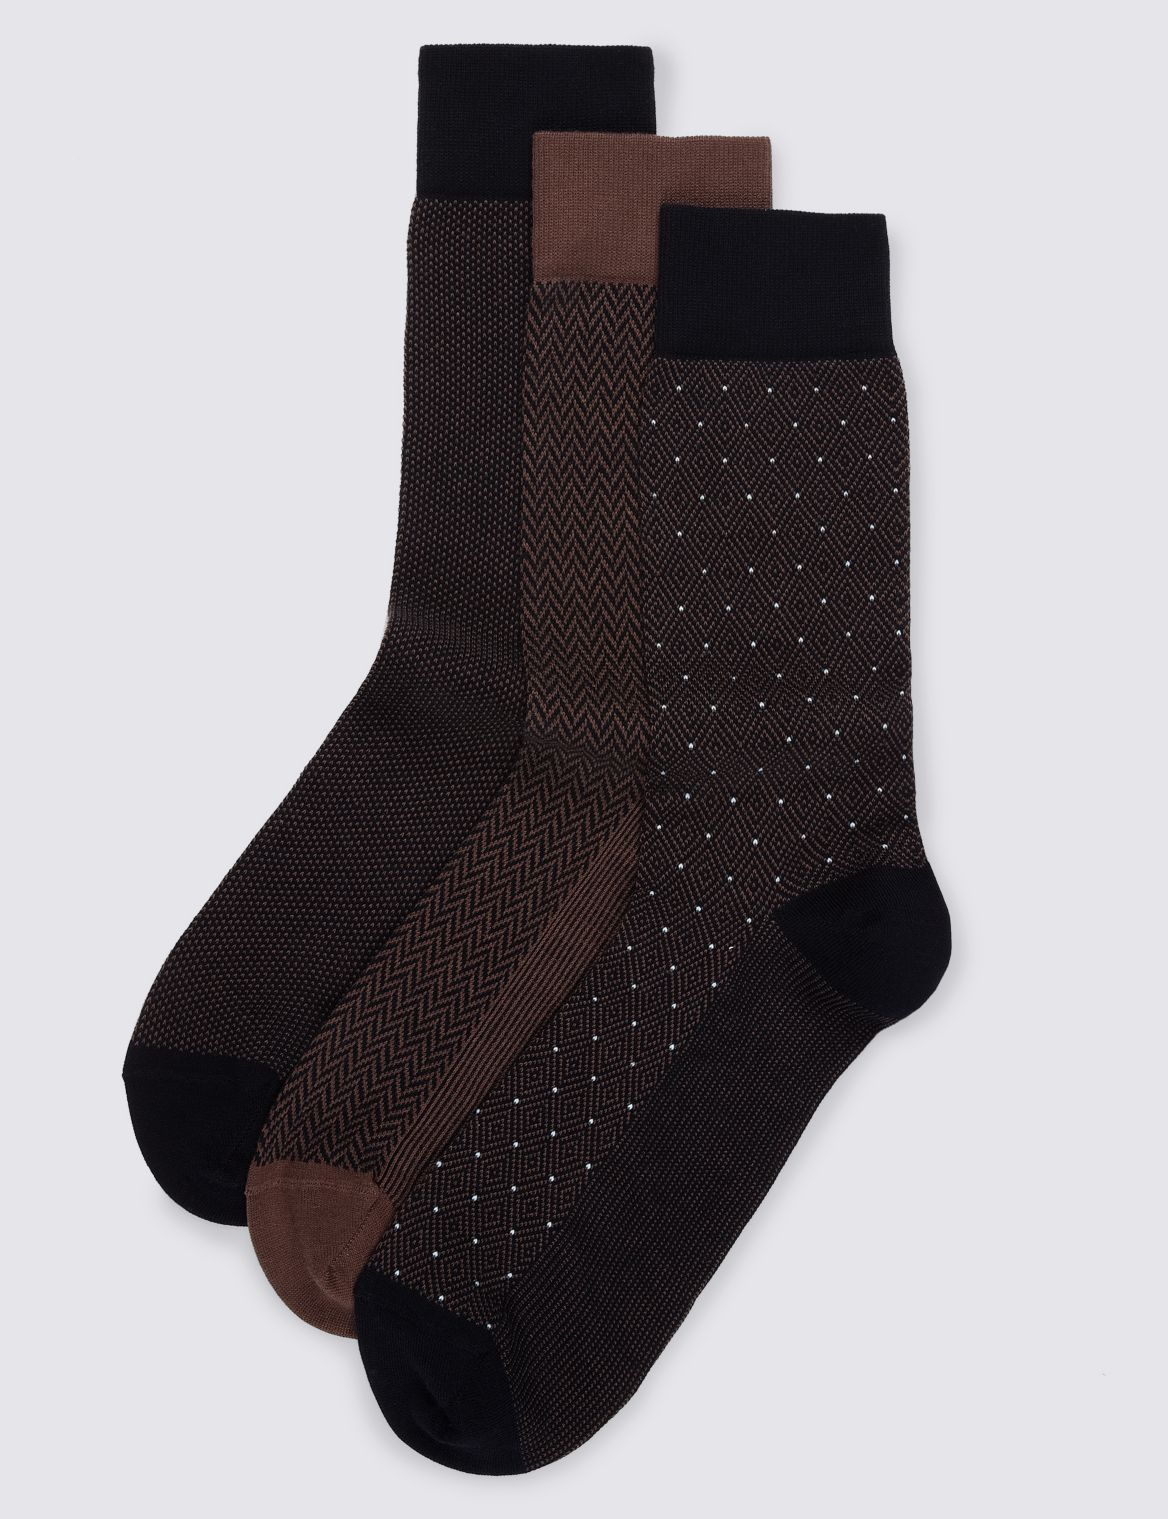 3 Pairs of Luxury Cotton Socks brown mix